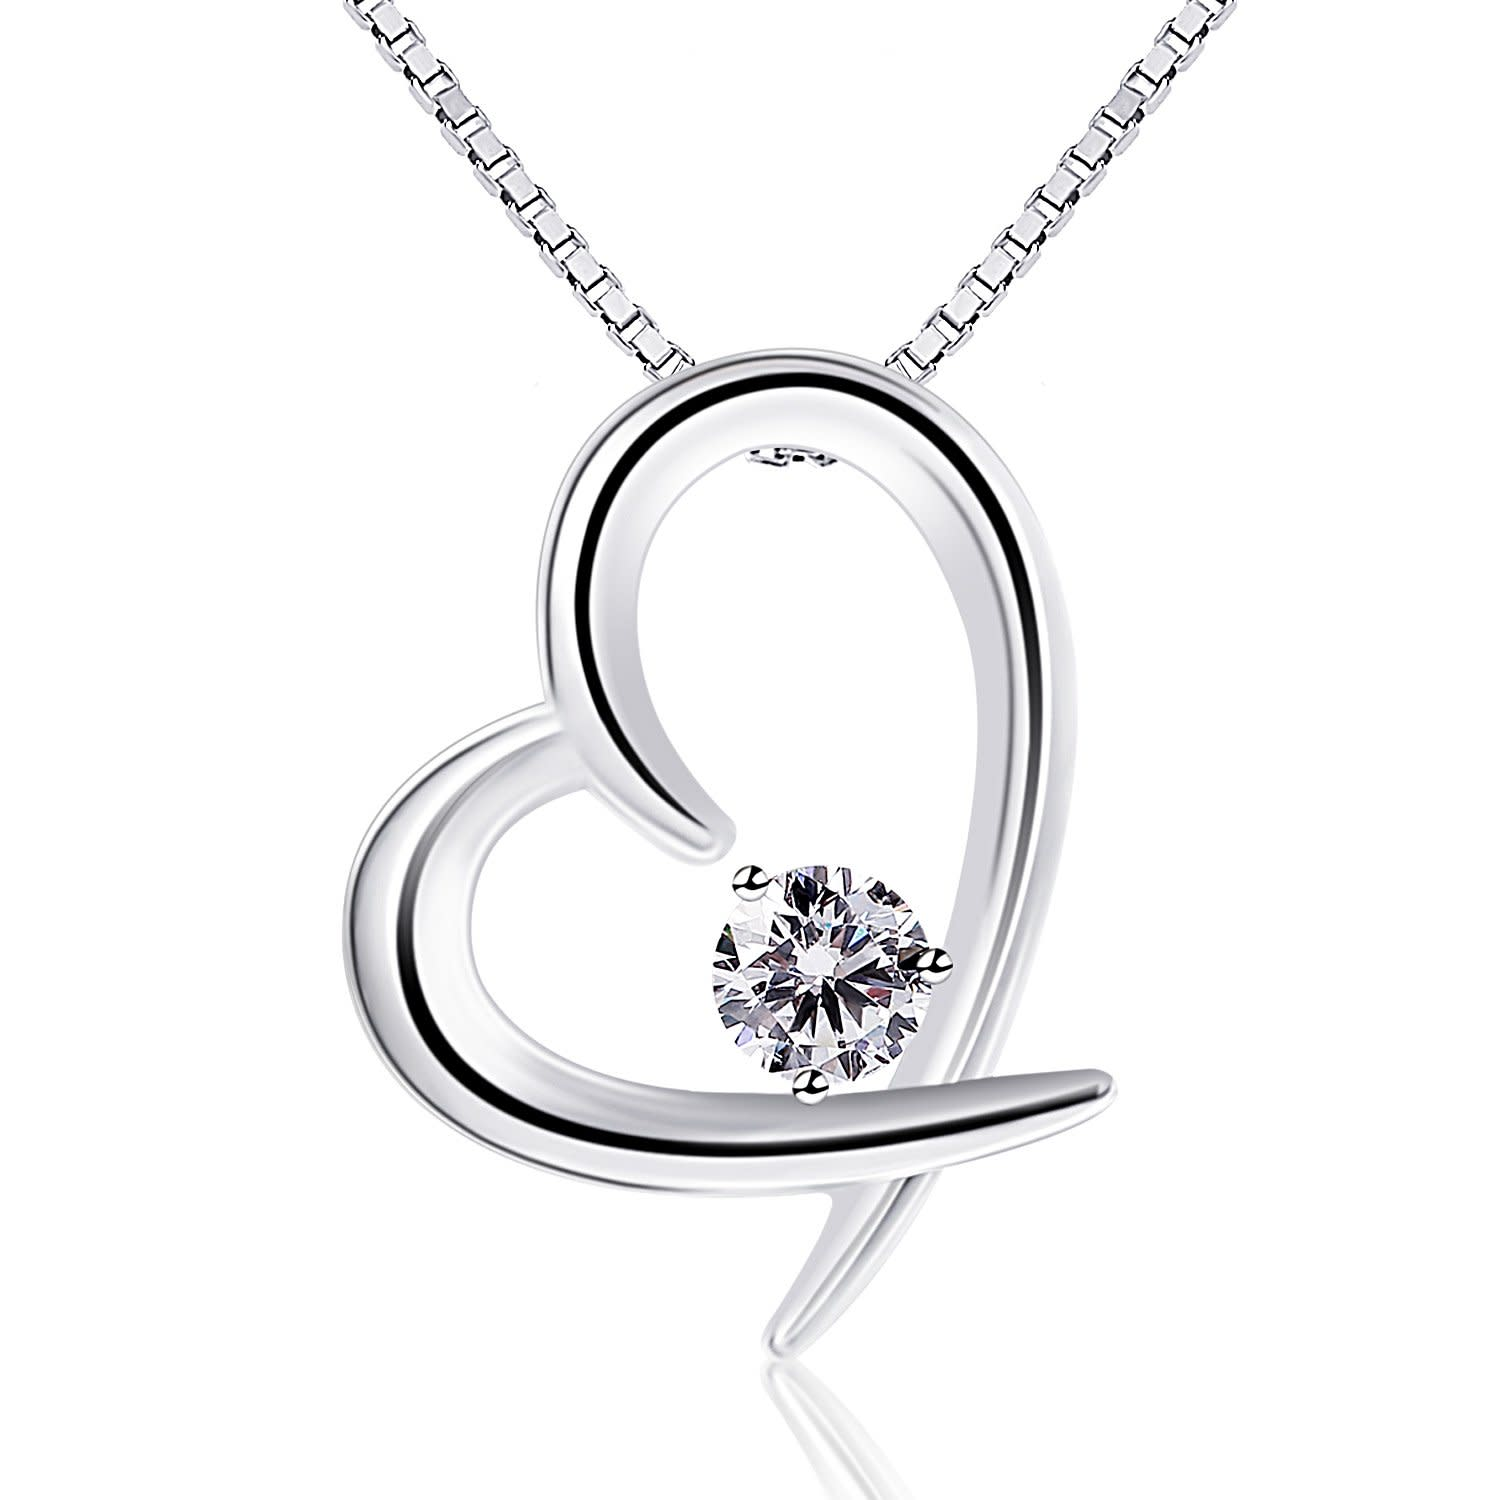 diamond gold necklace heart pendant white d webstore ernest jones number product